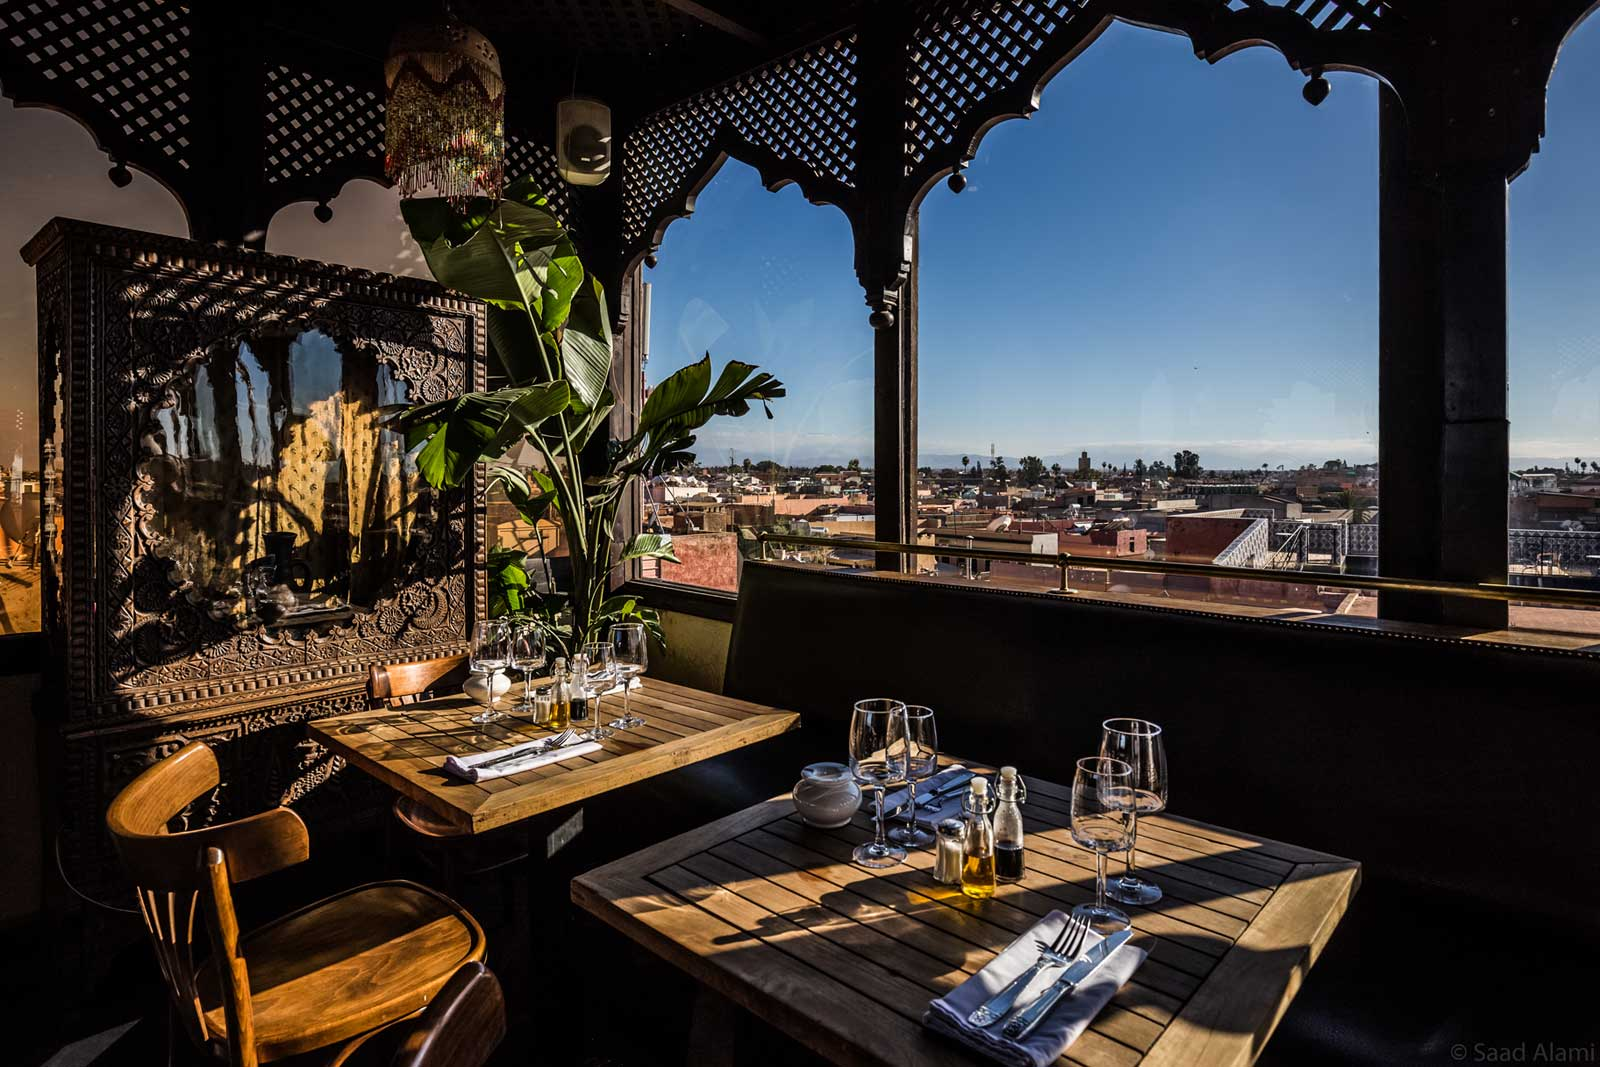 Le Salama, coctails and sunset in Marrakech